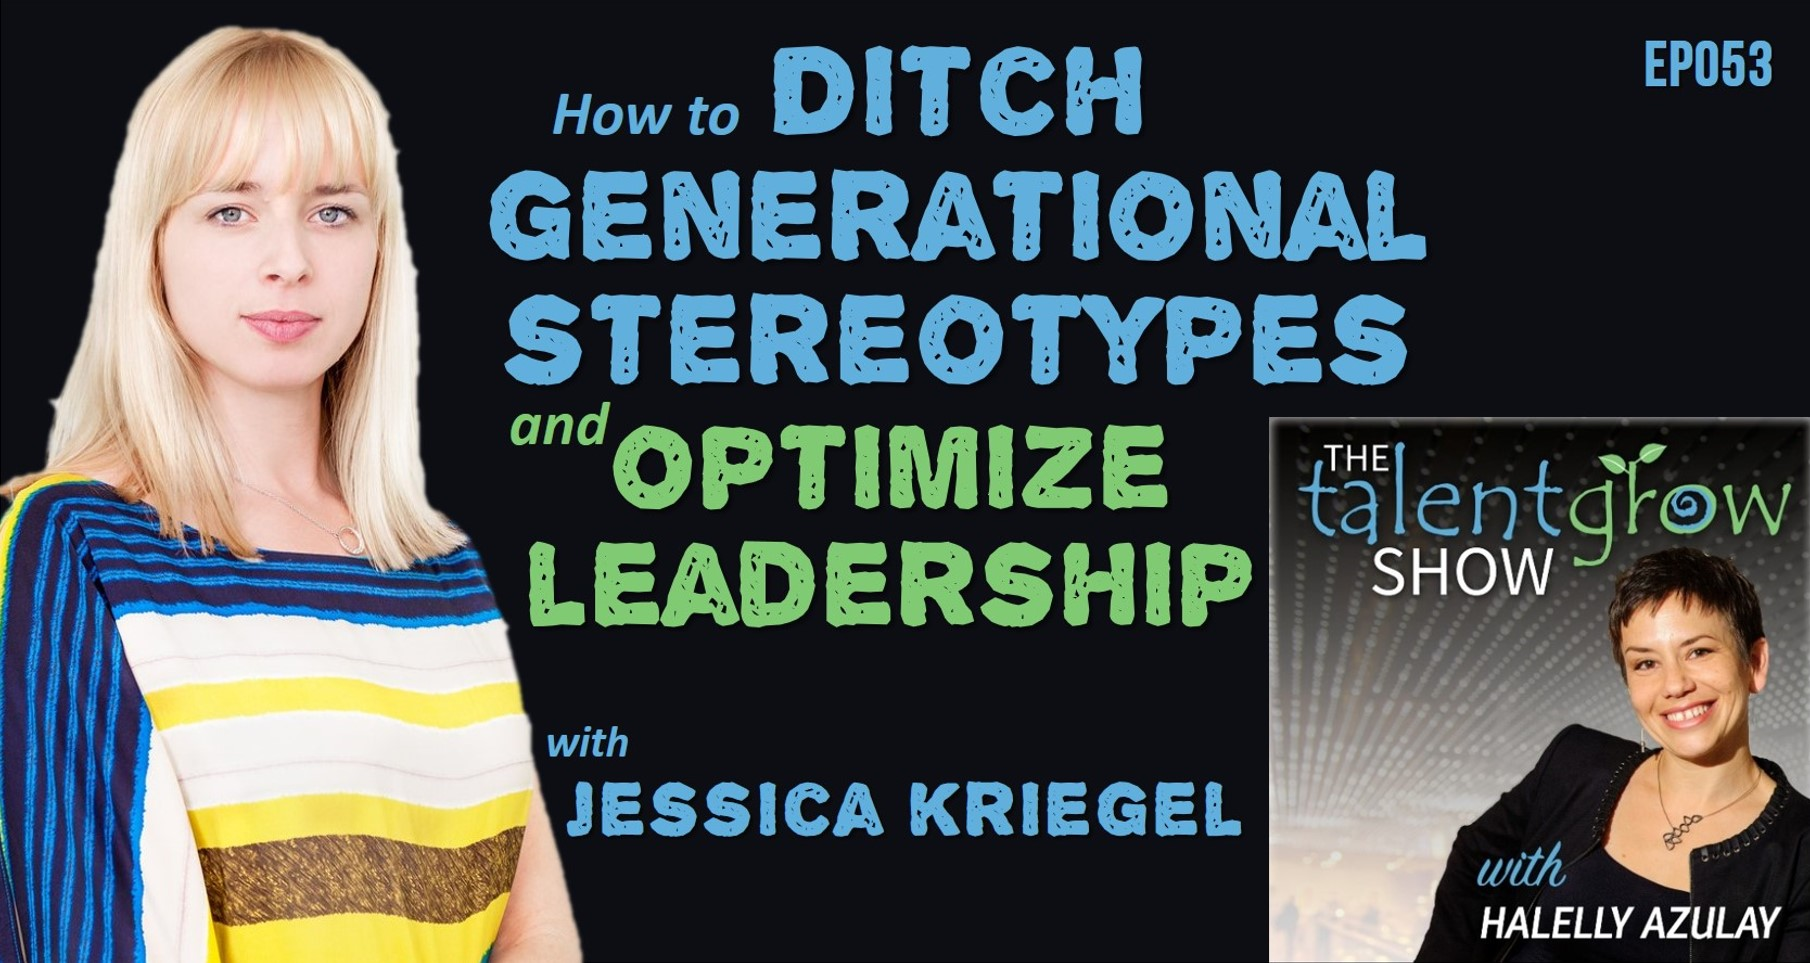 TalentGrow Show ep053 How to ditch generational stereotypes and optimize leadership with Jessica Kriegel by Halelly Azulay